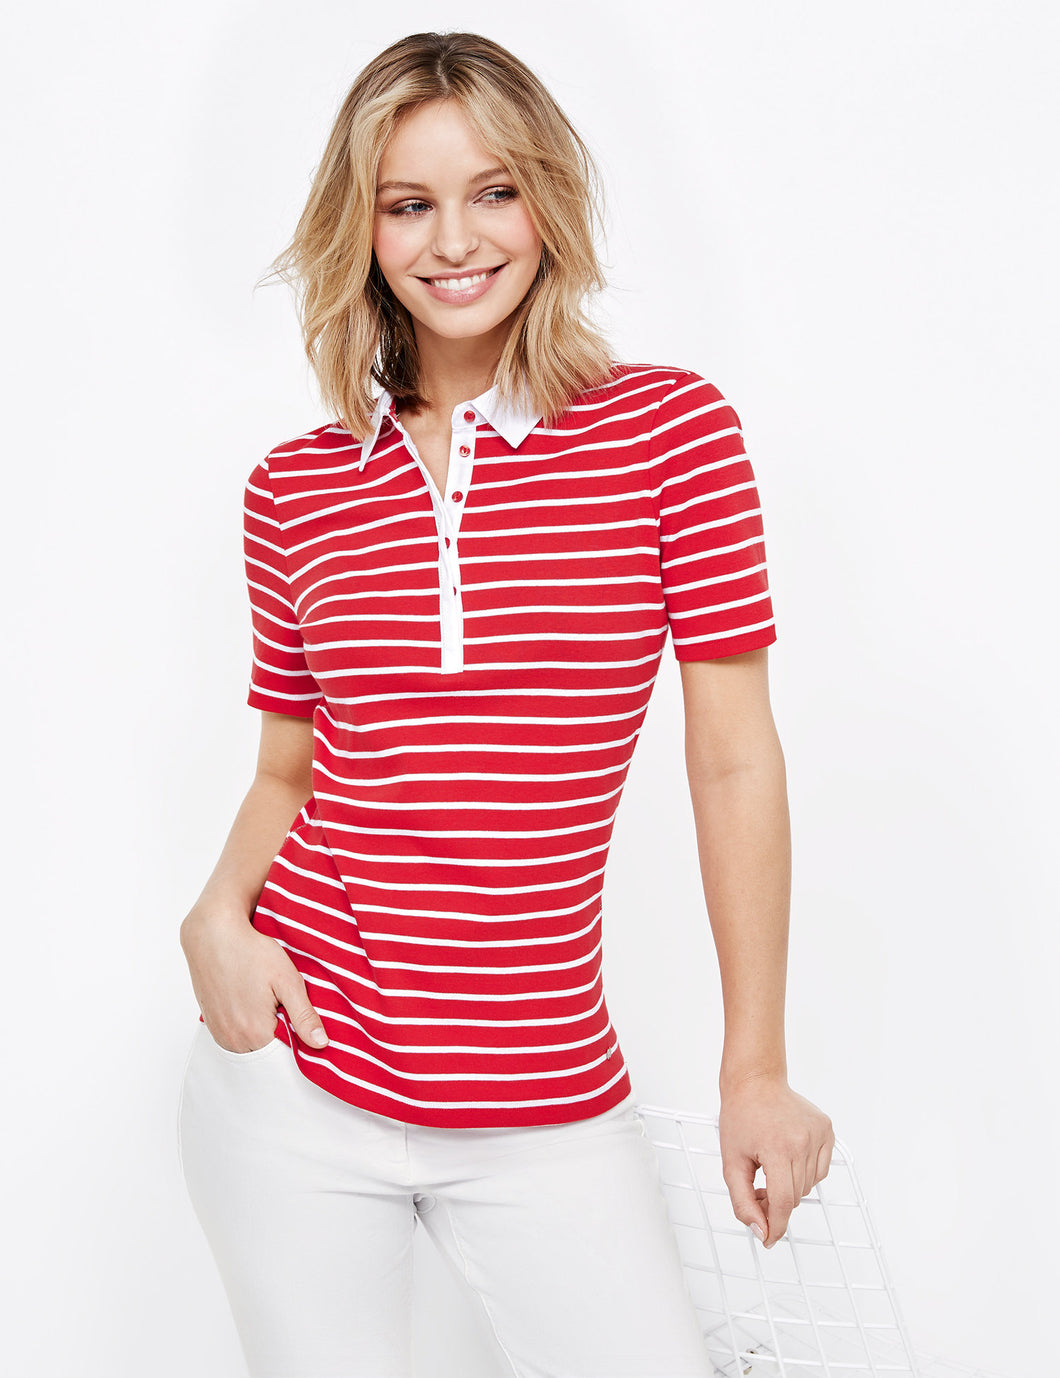 Red Striped Polo - ELIZABETH SCHINDLER